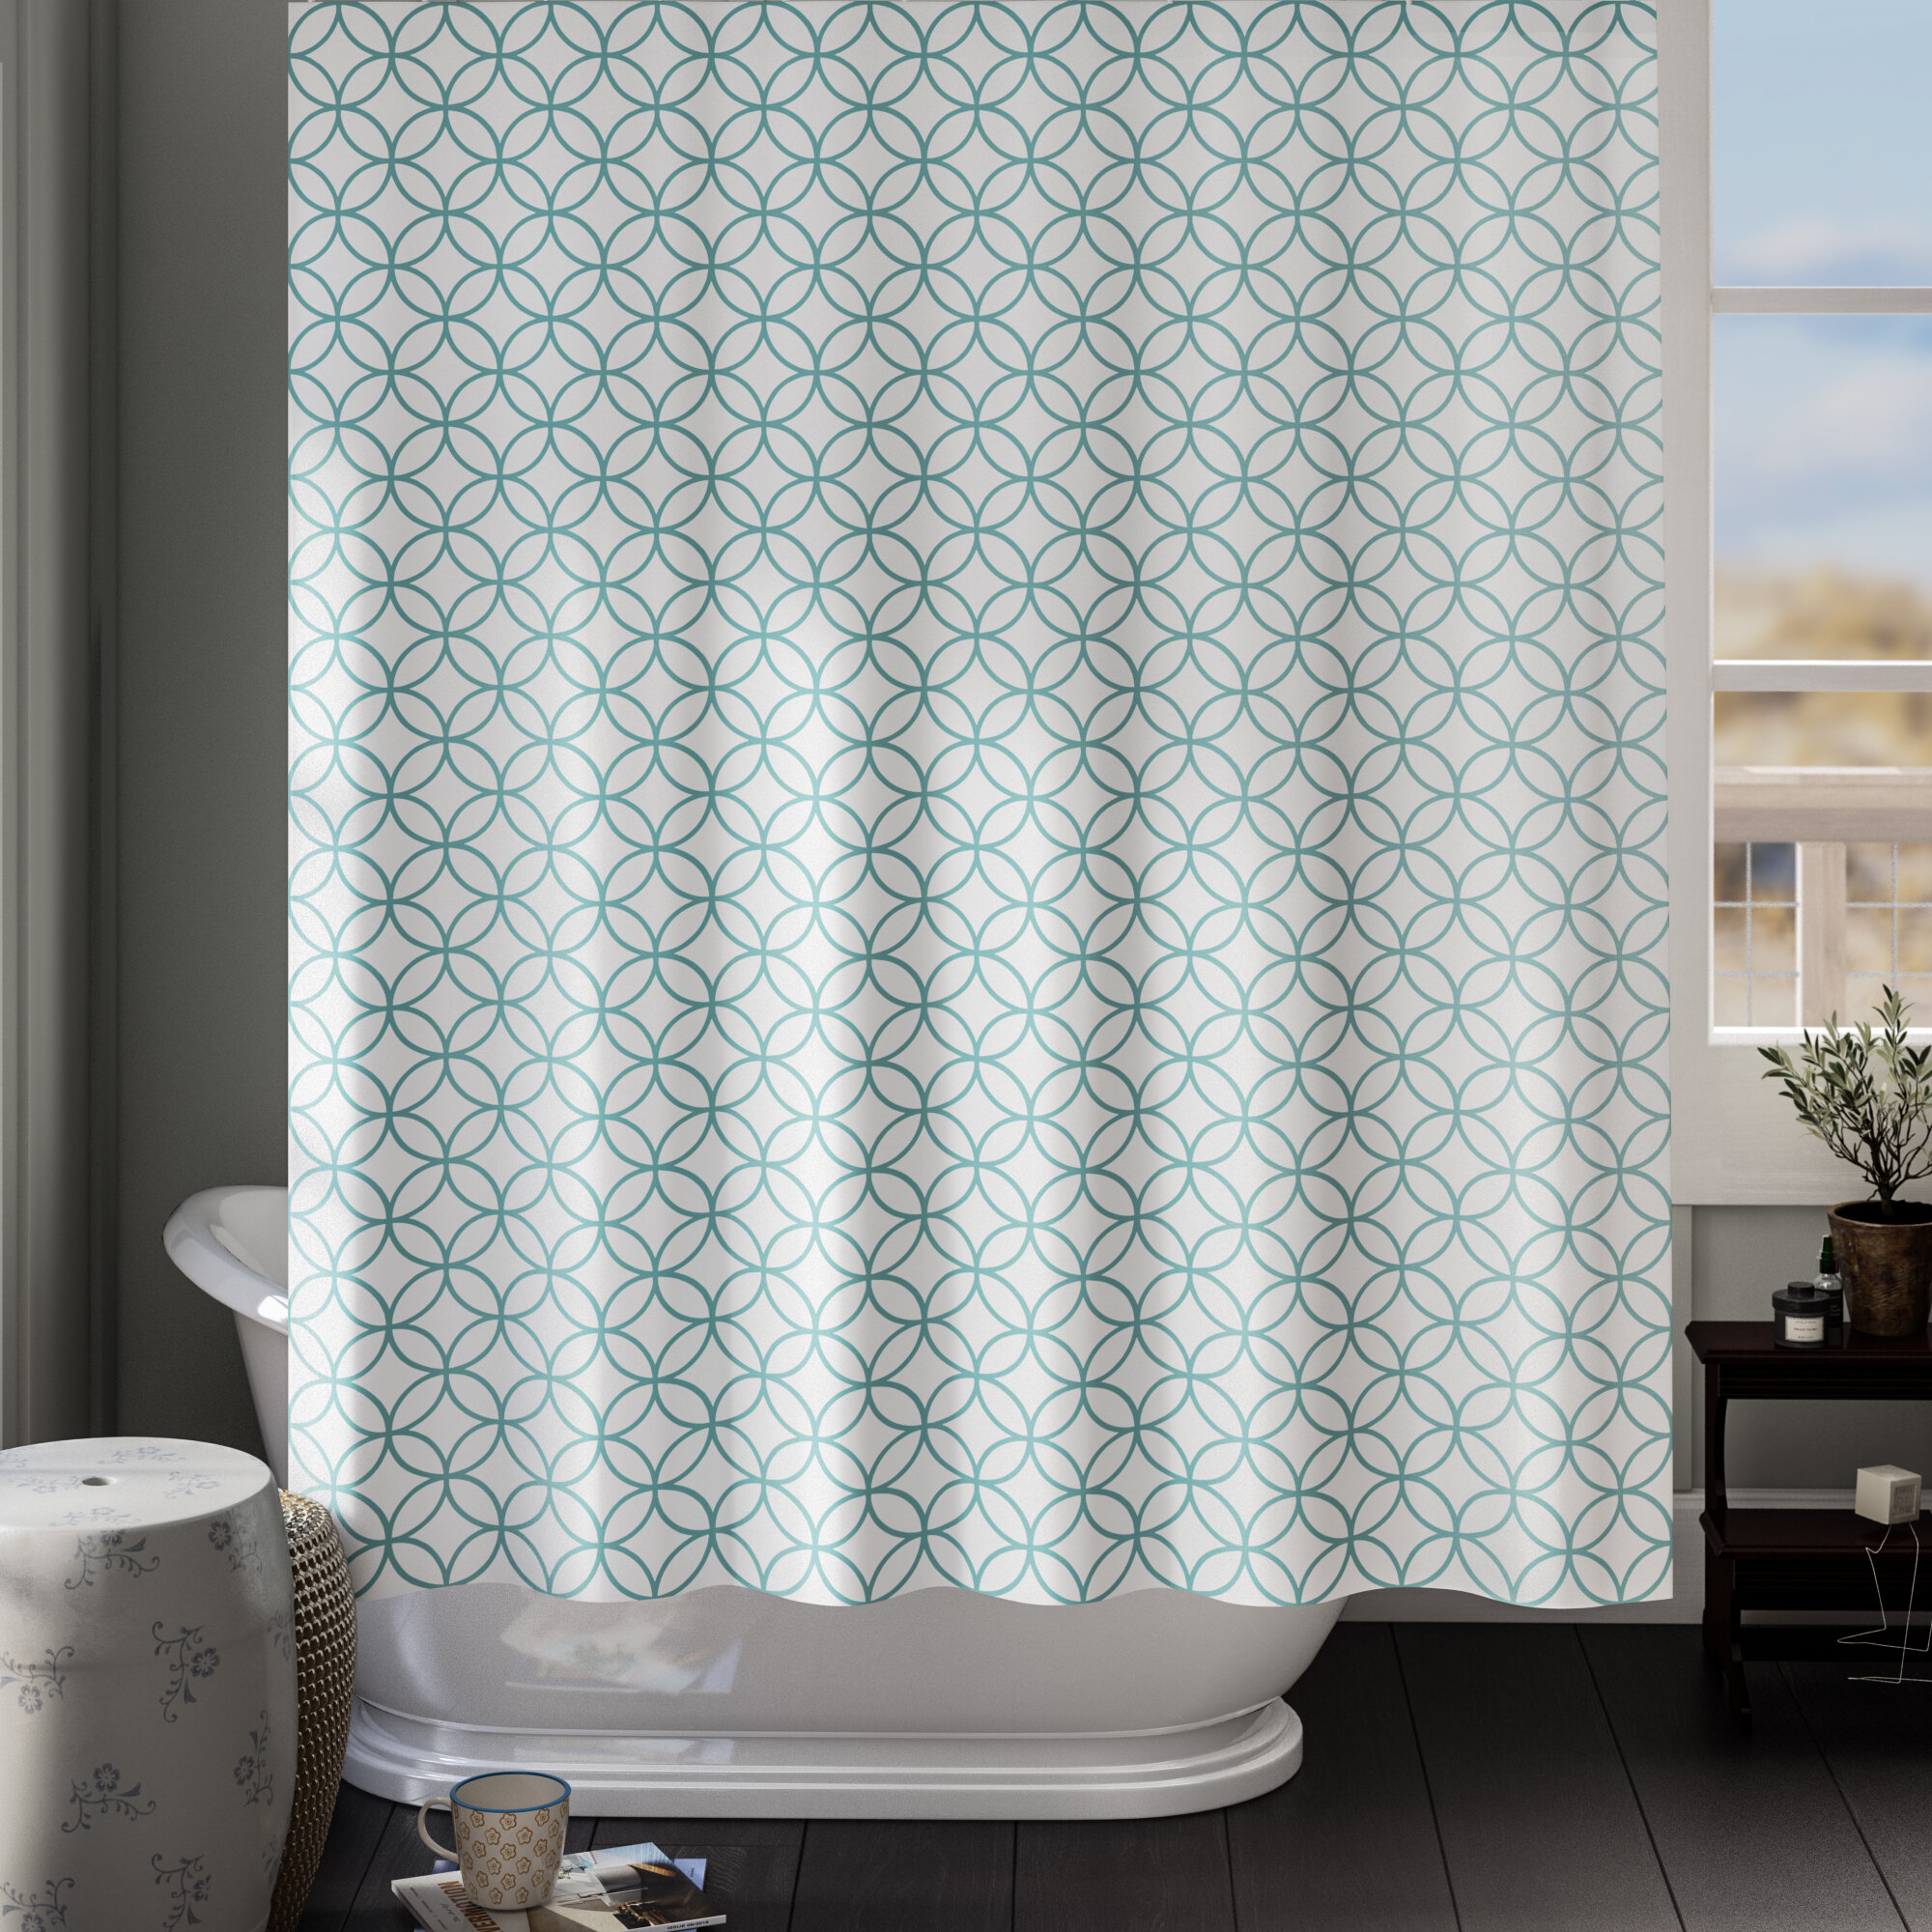 Bella 18 Piece Shower curtain set with Geometric design Made of 100/% polyester.